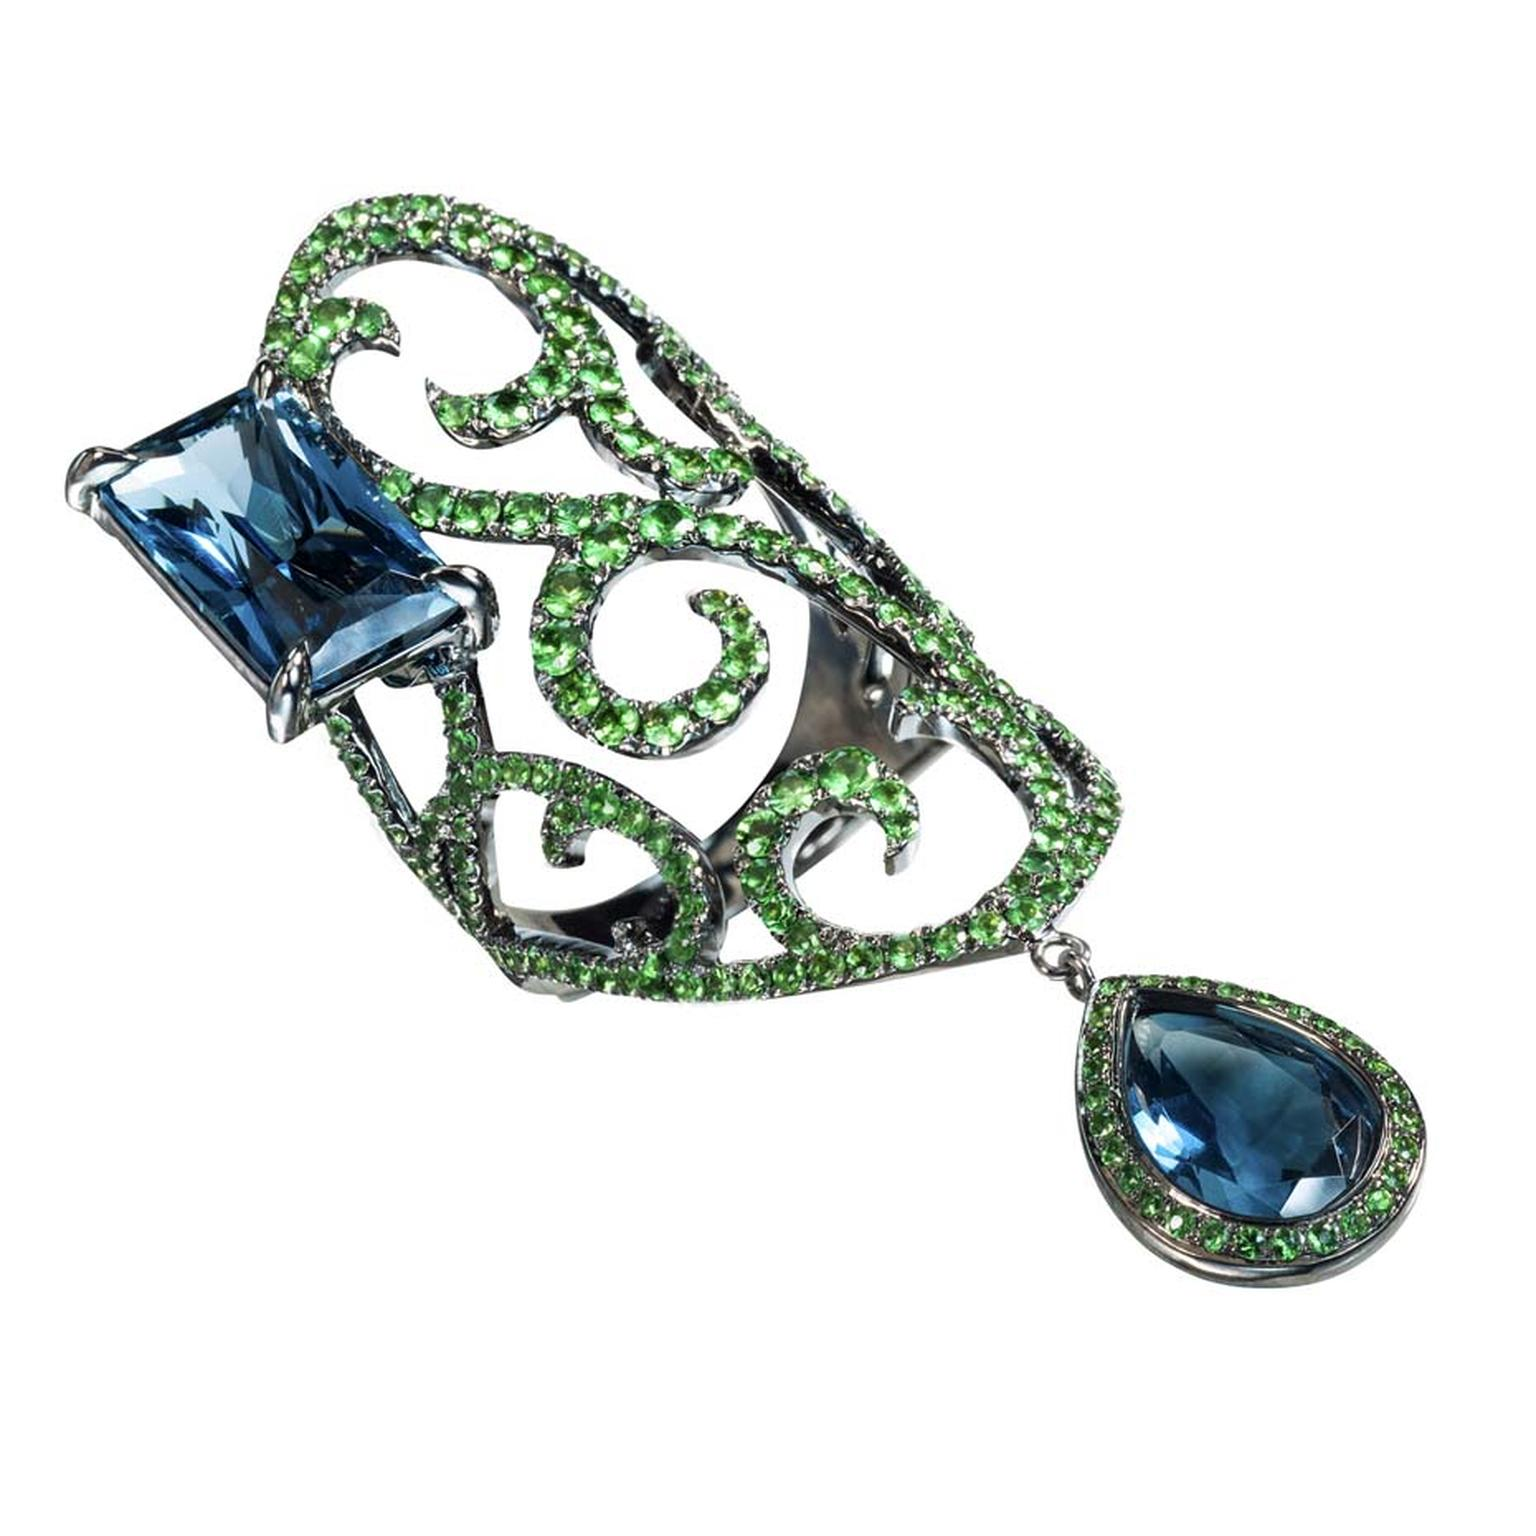 Dionea Orcini white gold arabesque Jaipur ring featuring tsavorites and London blue topaz.